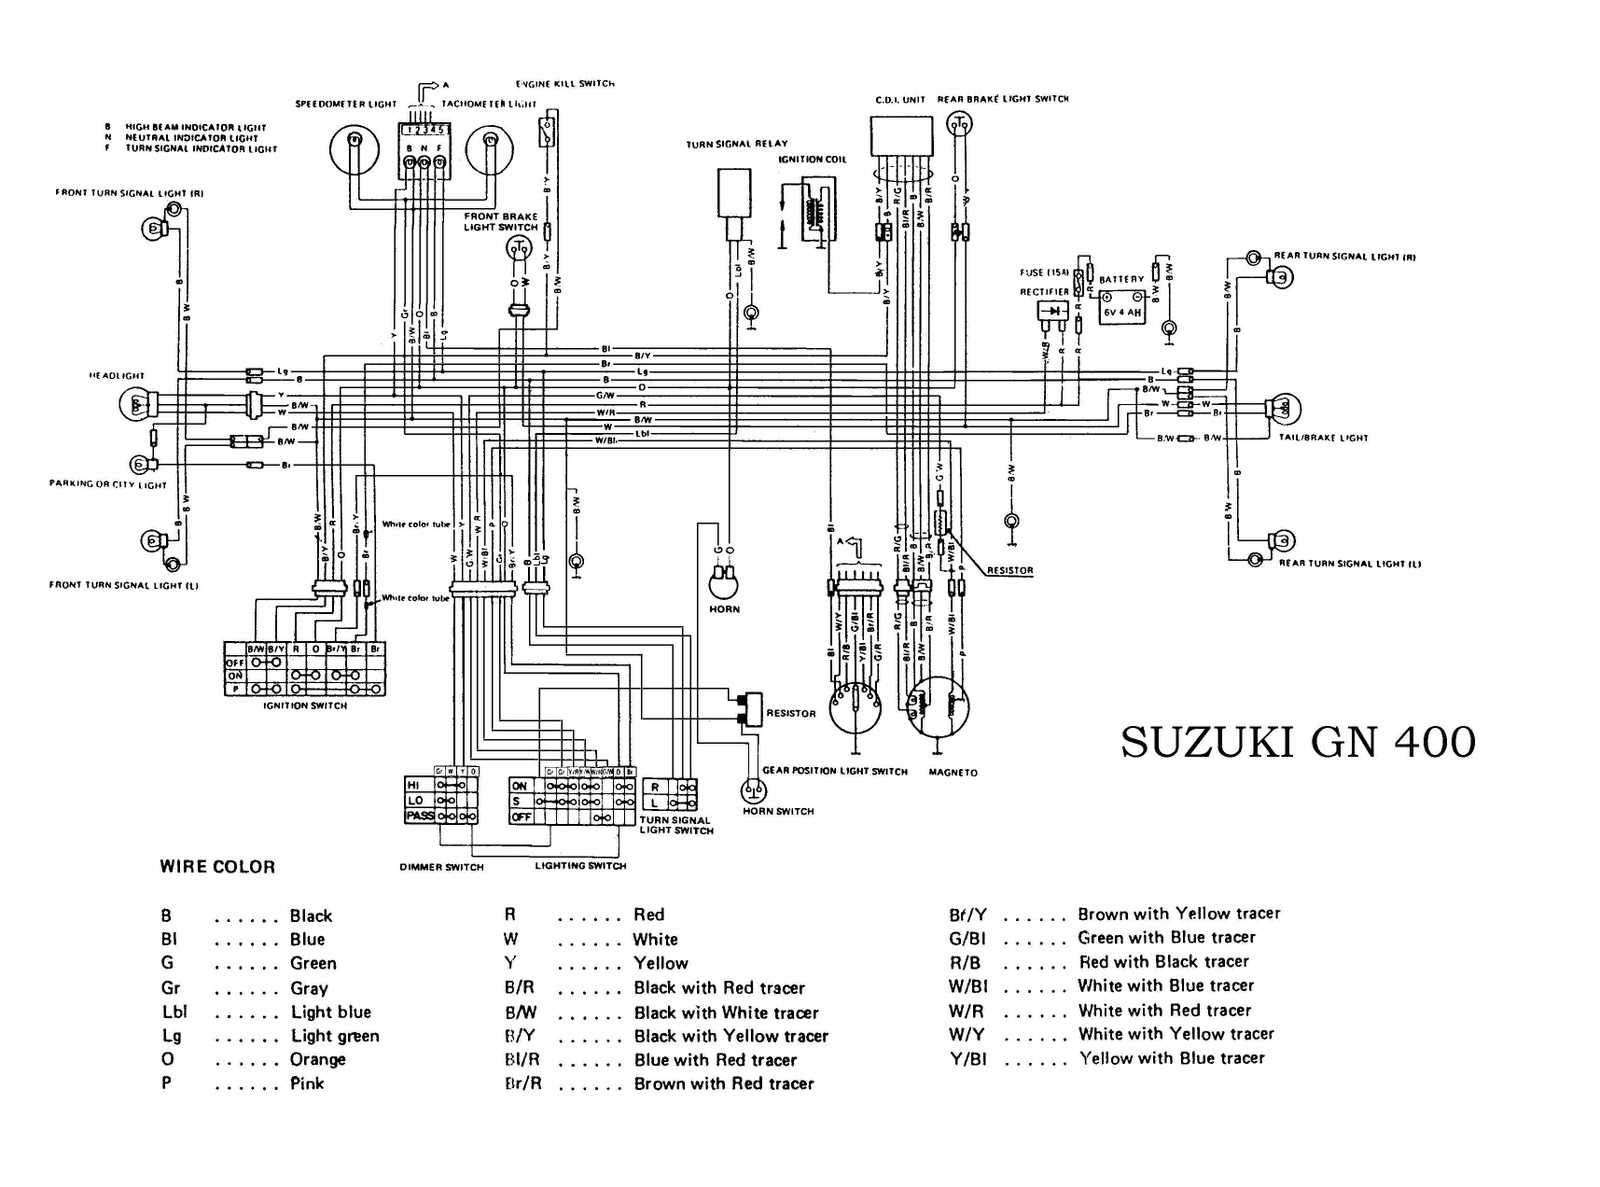 air conditioner wiring color code with Suzuki Gn400 Electrical Wiring Diagram on 1983 1988 Ford Bronco Ii Start Ignition besides 2000 Toyota Avalon Engine Diagram additionally P 0900c152800610de together with 1999 Subaru Legacy Stereo Wiring Diagram also Marine Air Conditioning Wiring Diagram.